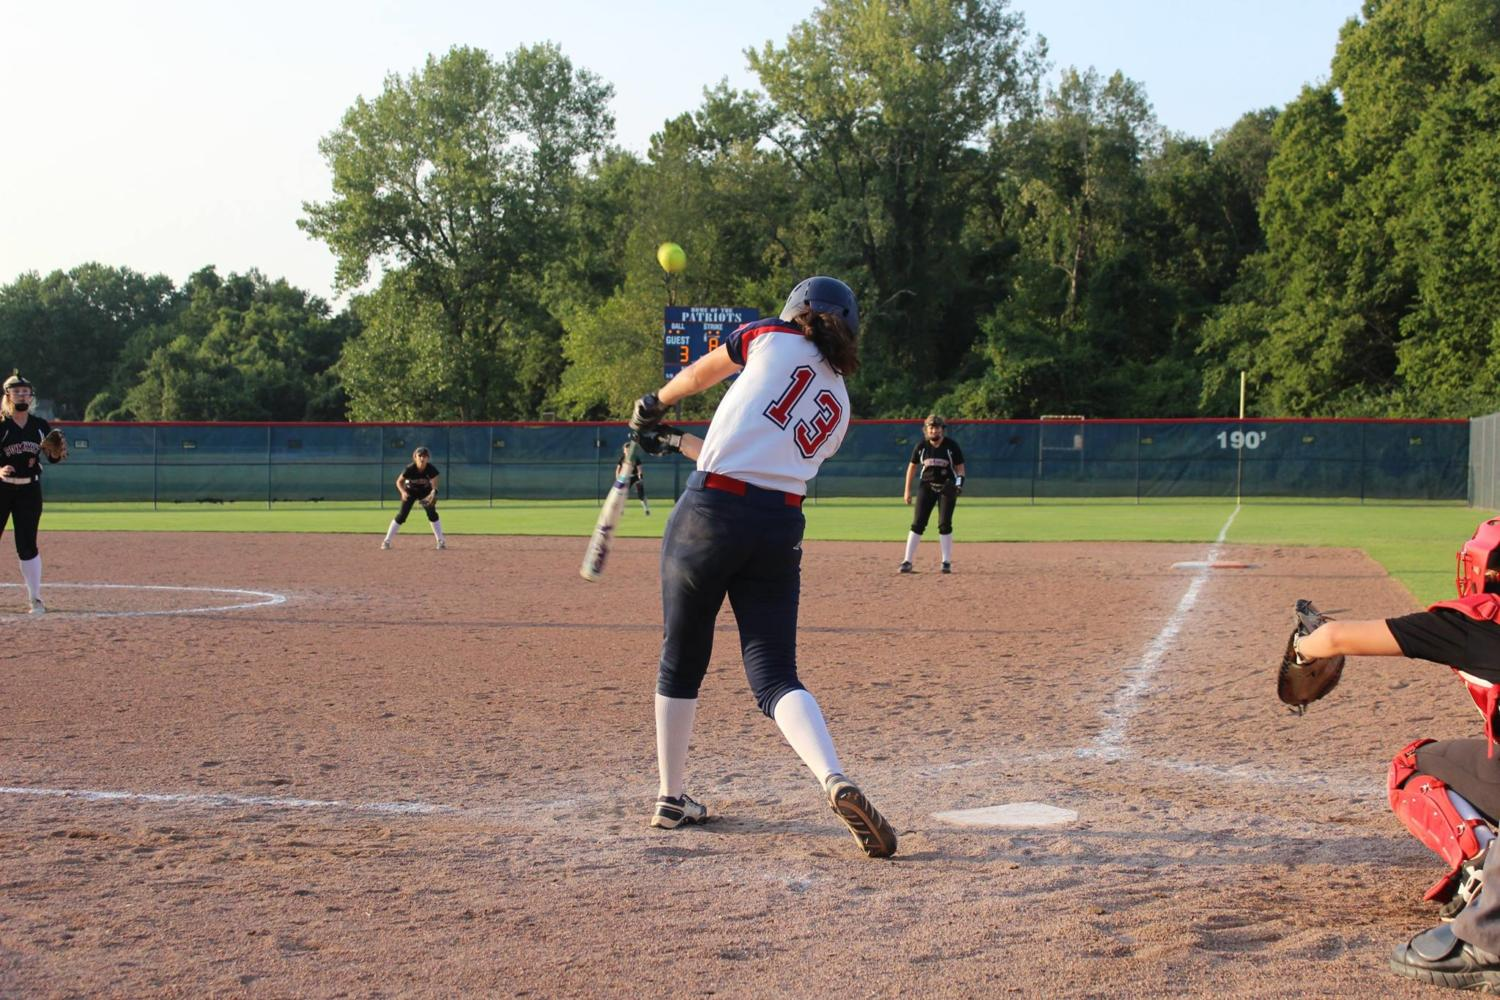 Senior+left+fielder+Amanda+Noser+hits+the+ball+to+the+opposite+field+in+a+game+against+Rockwood+Summit.+Photo+by+Tim+Wahl.